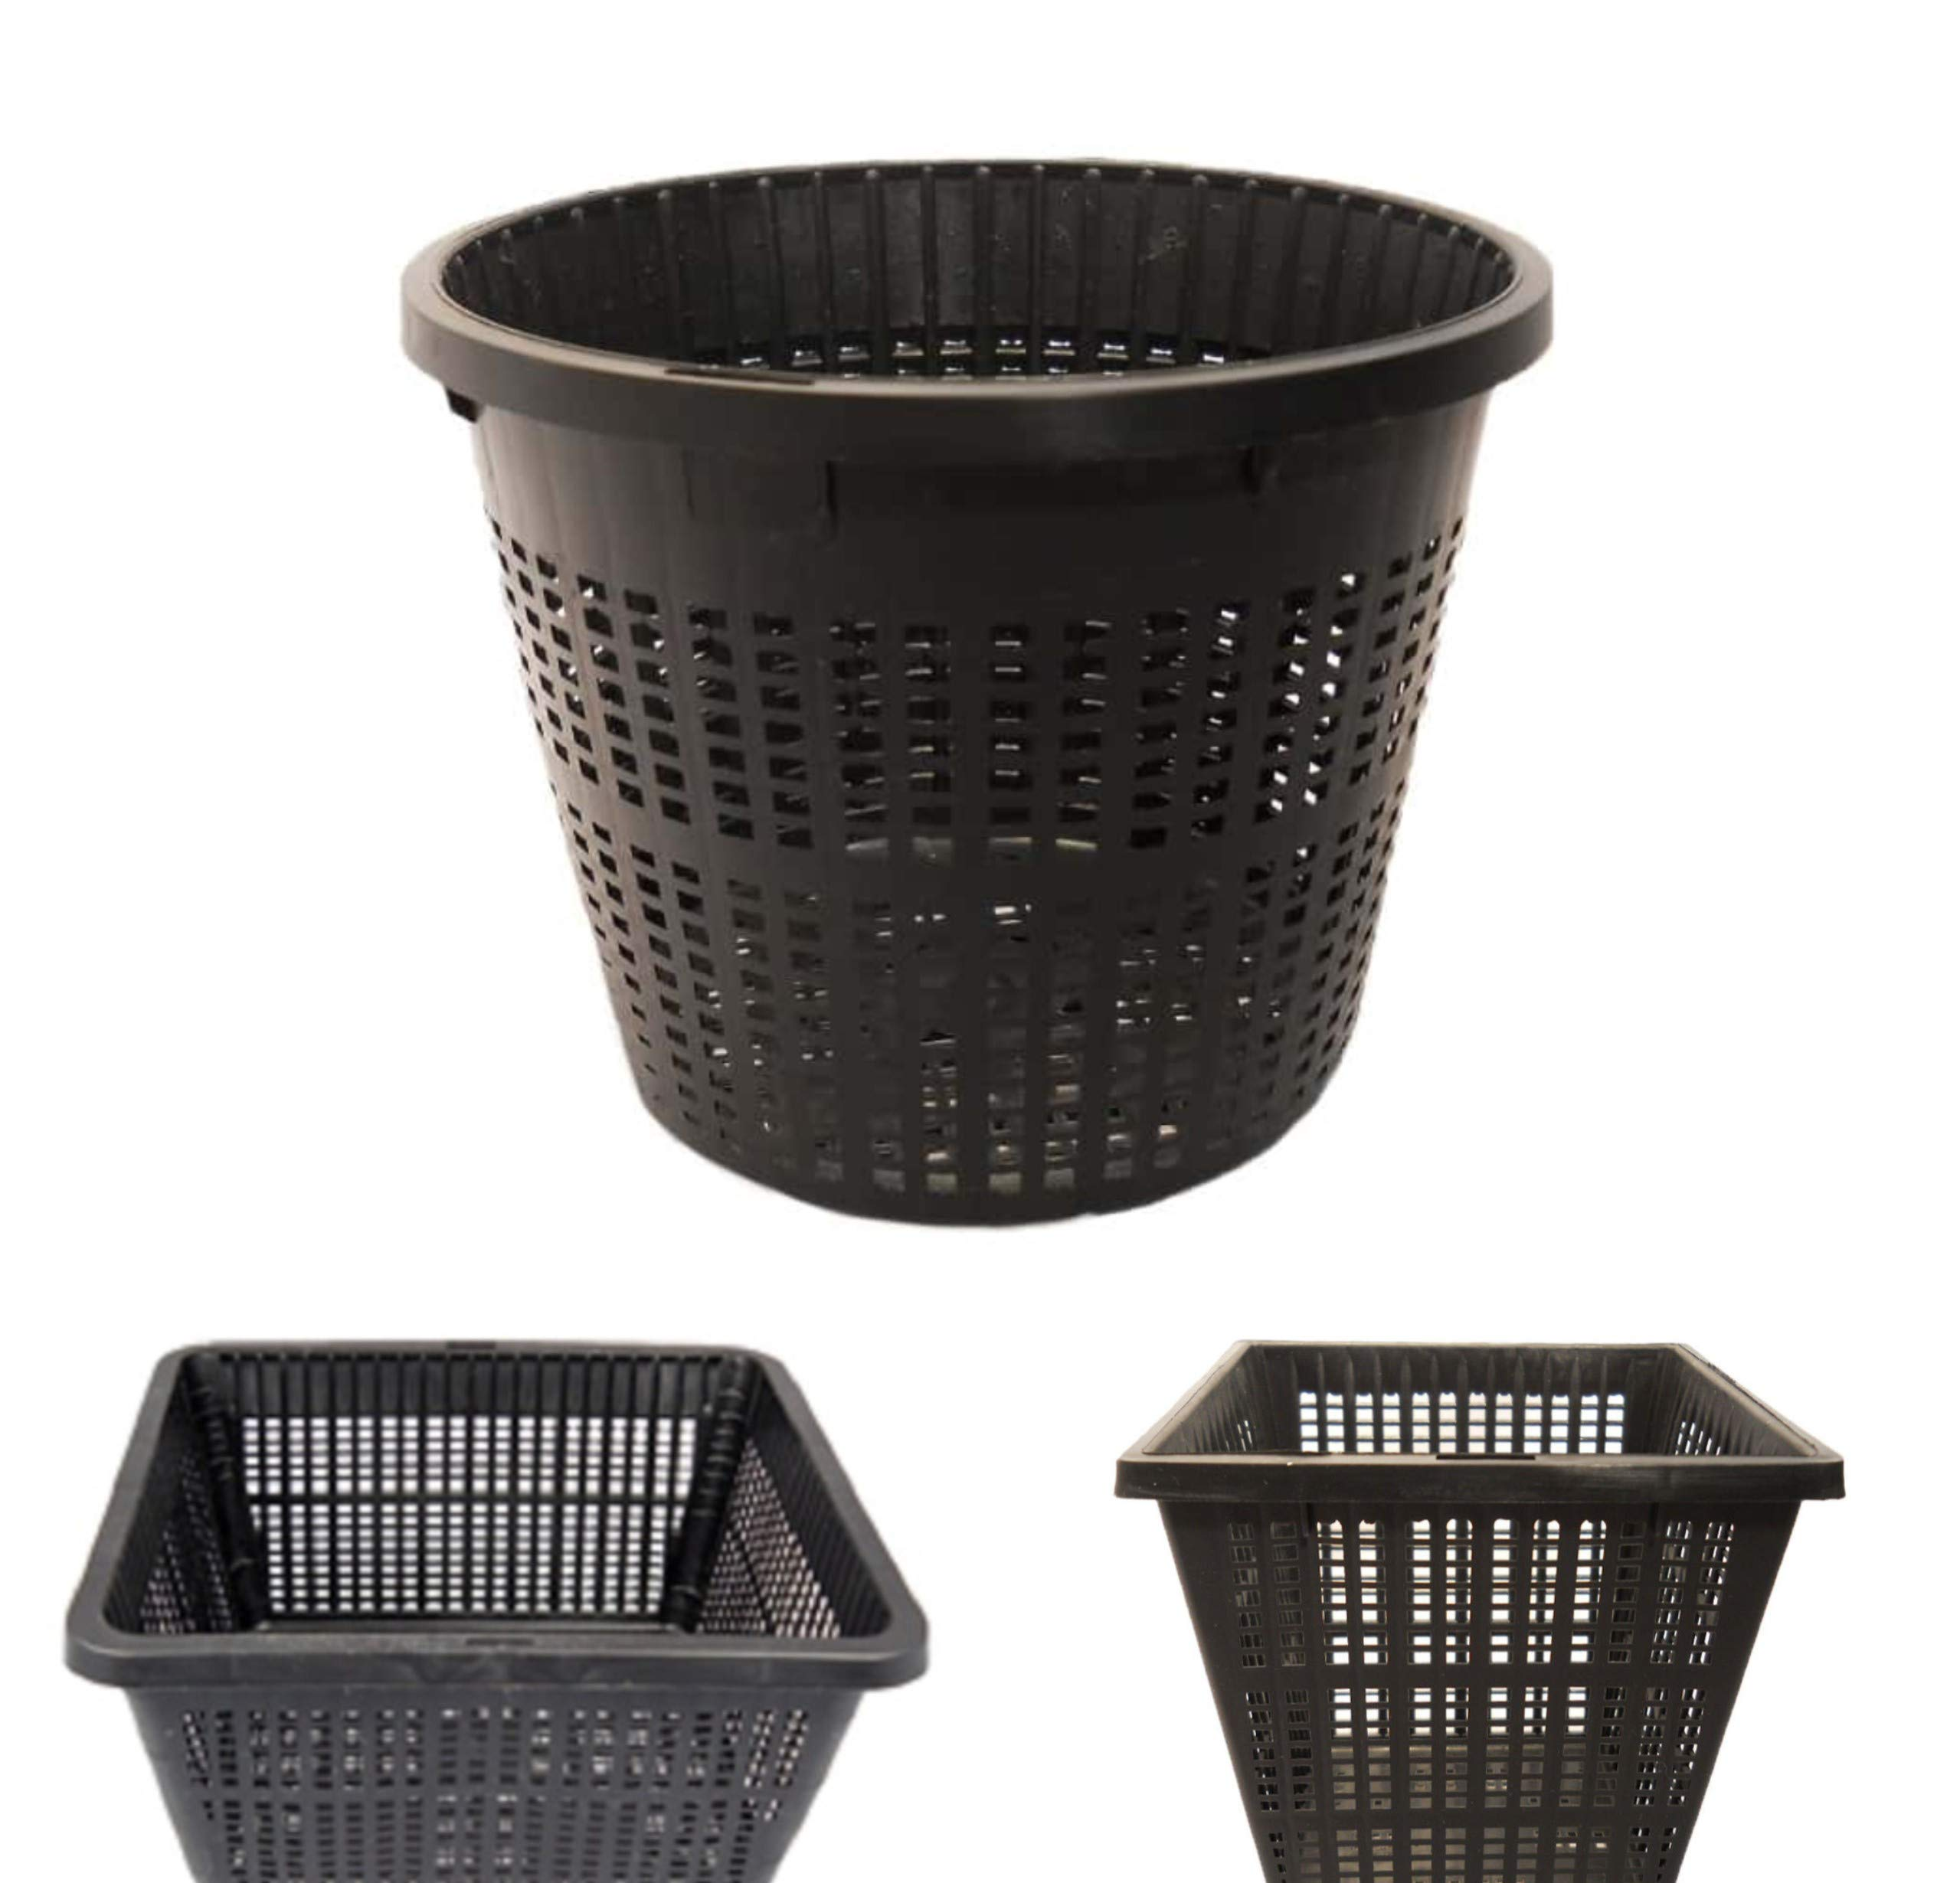 Small Pond Planting Basket Kit, Pond Planting Basket Kit, Includes a Variety of 8 Plastic Pond Baskets